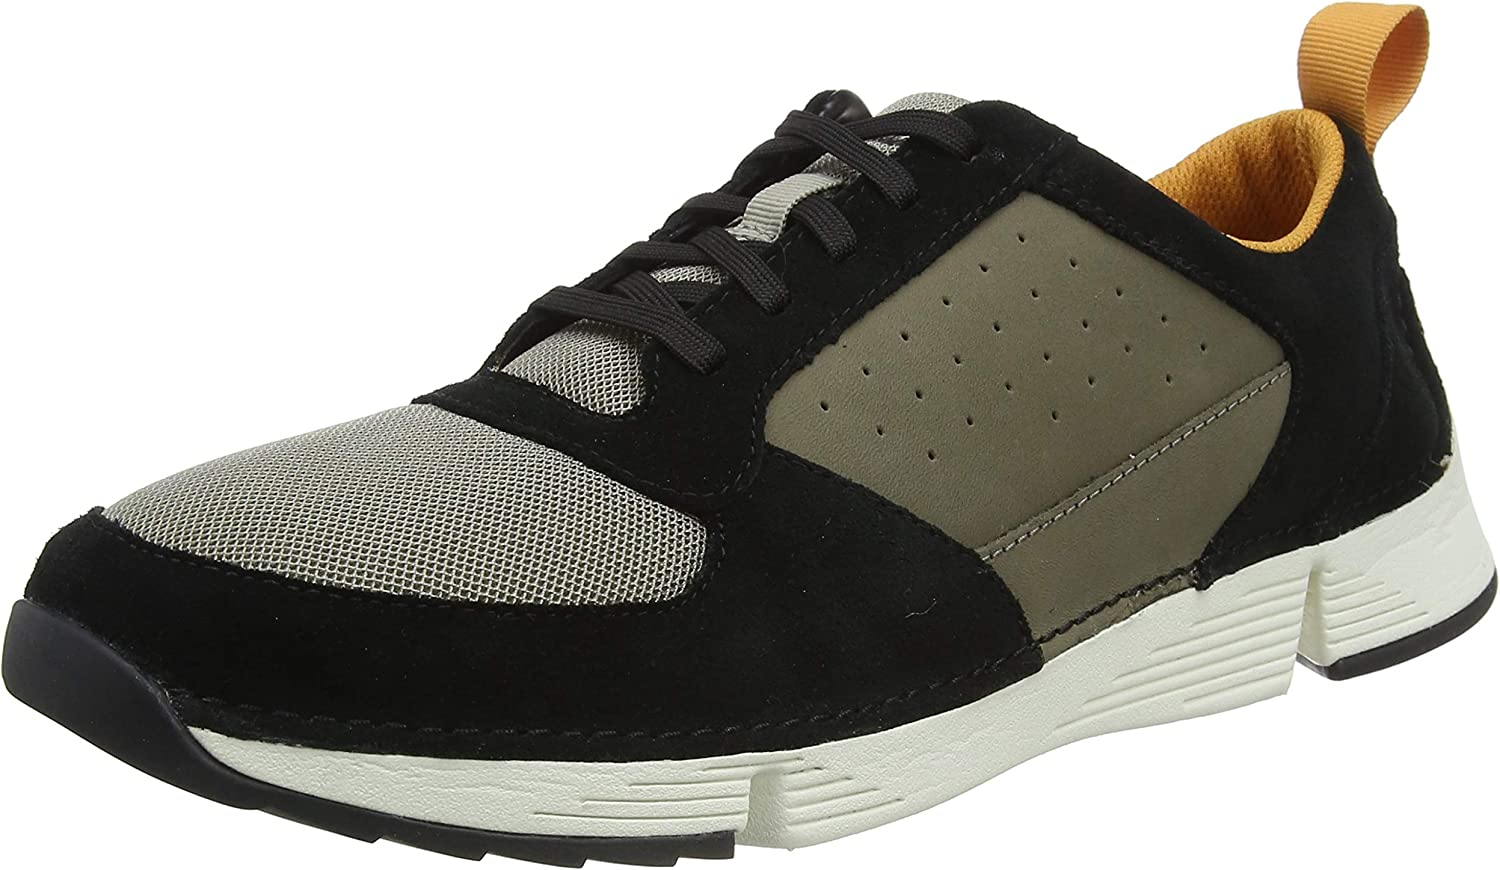 Clarks Men's Low-Top New product type Sneakers High quality new